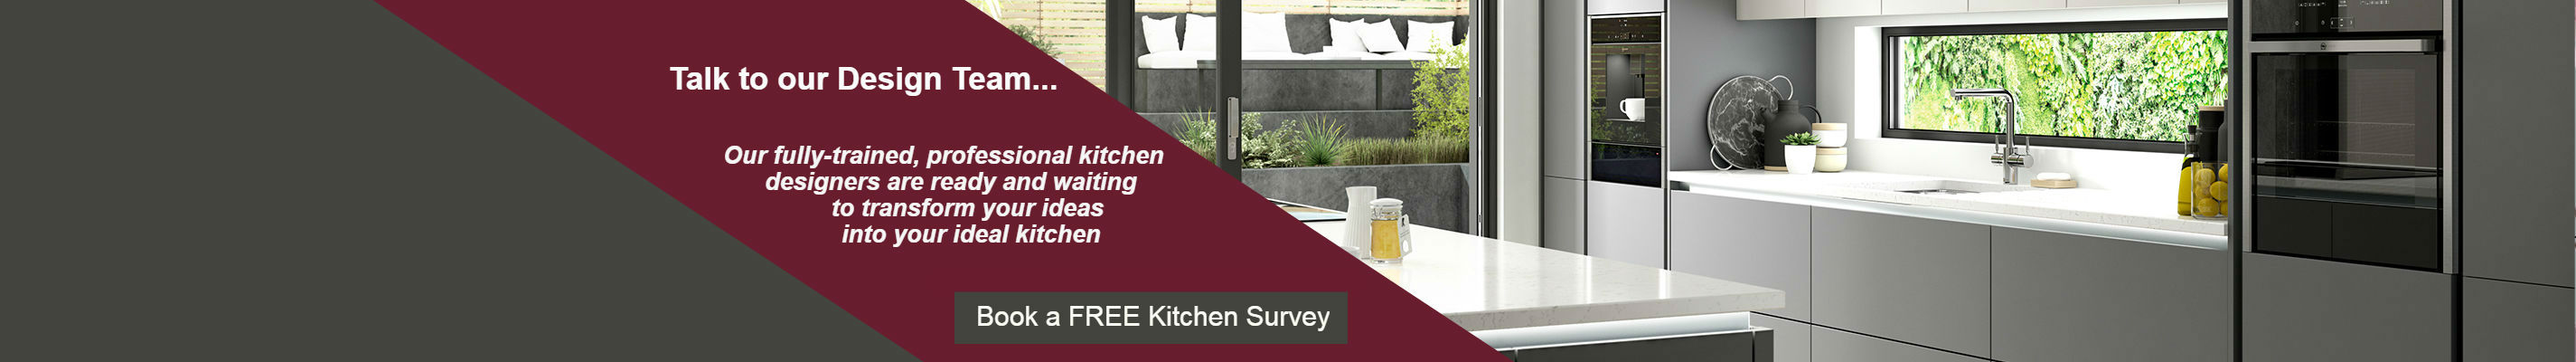 Book a FREE Kitchen Survey